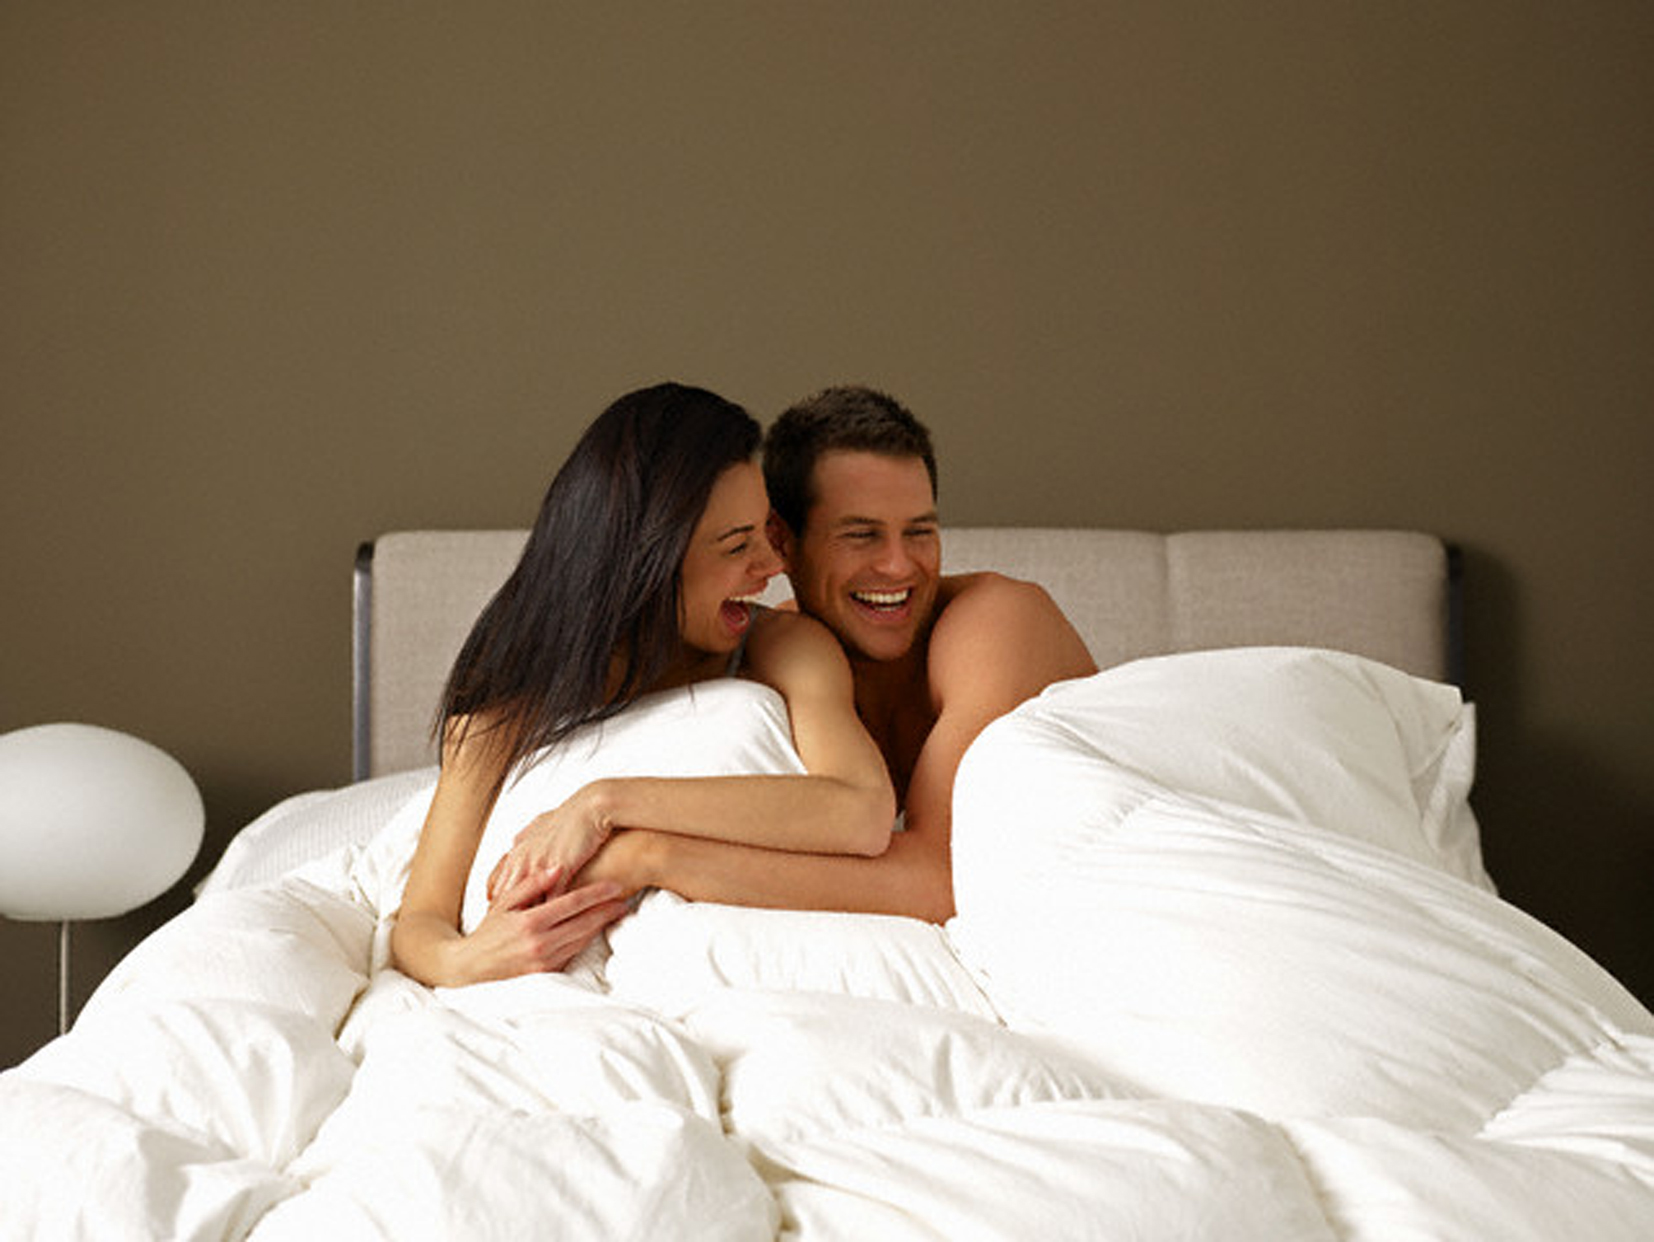 7 Ways To Make Missionary Position So Much Hotter